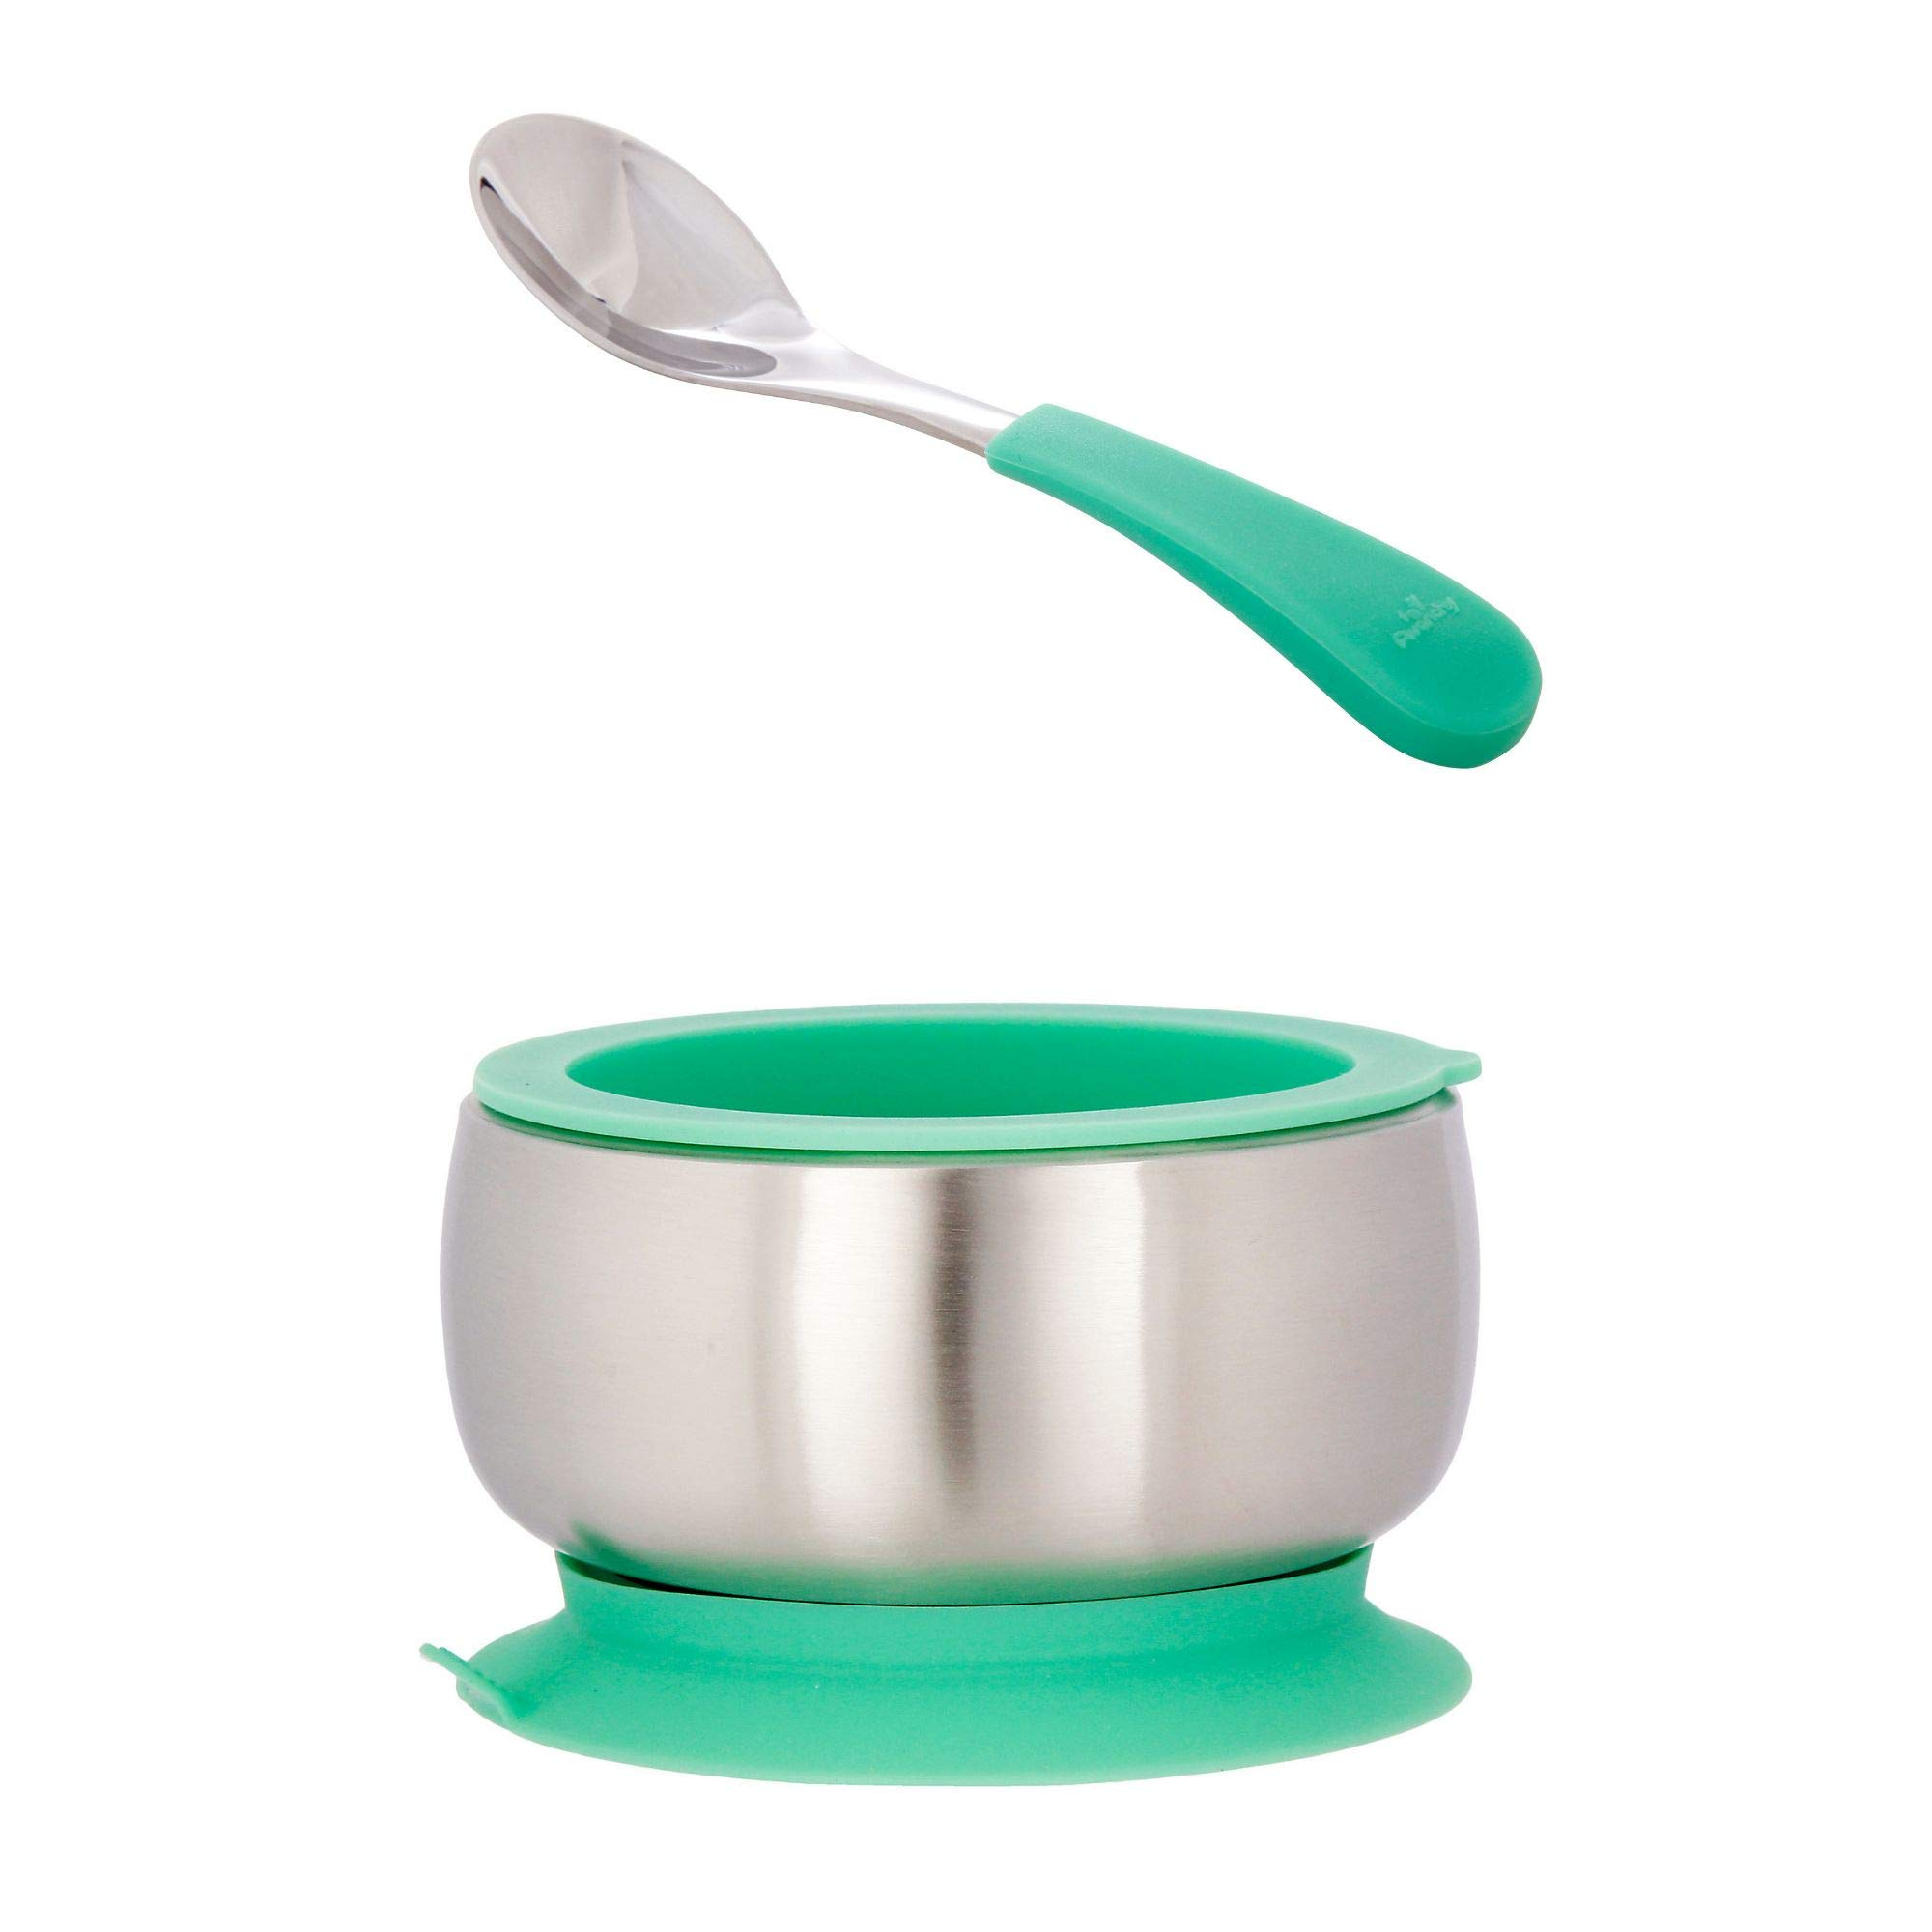 Avanchy Stainless Steel Baby Bowl with Spoon + Air Tight Lid Combo, Toddler, Kid, Child Suction Bowl + Spoon. 18/8, BPA Free, BPS Free, Lead Free and Phthalate Free. (Baby, Green) by Avanchy